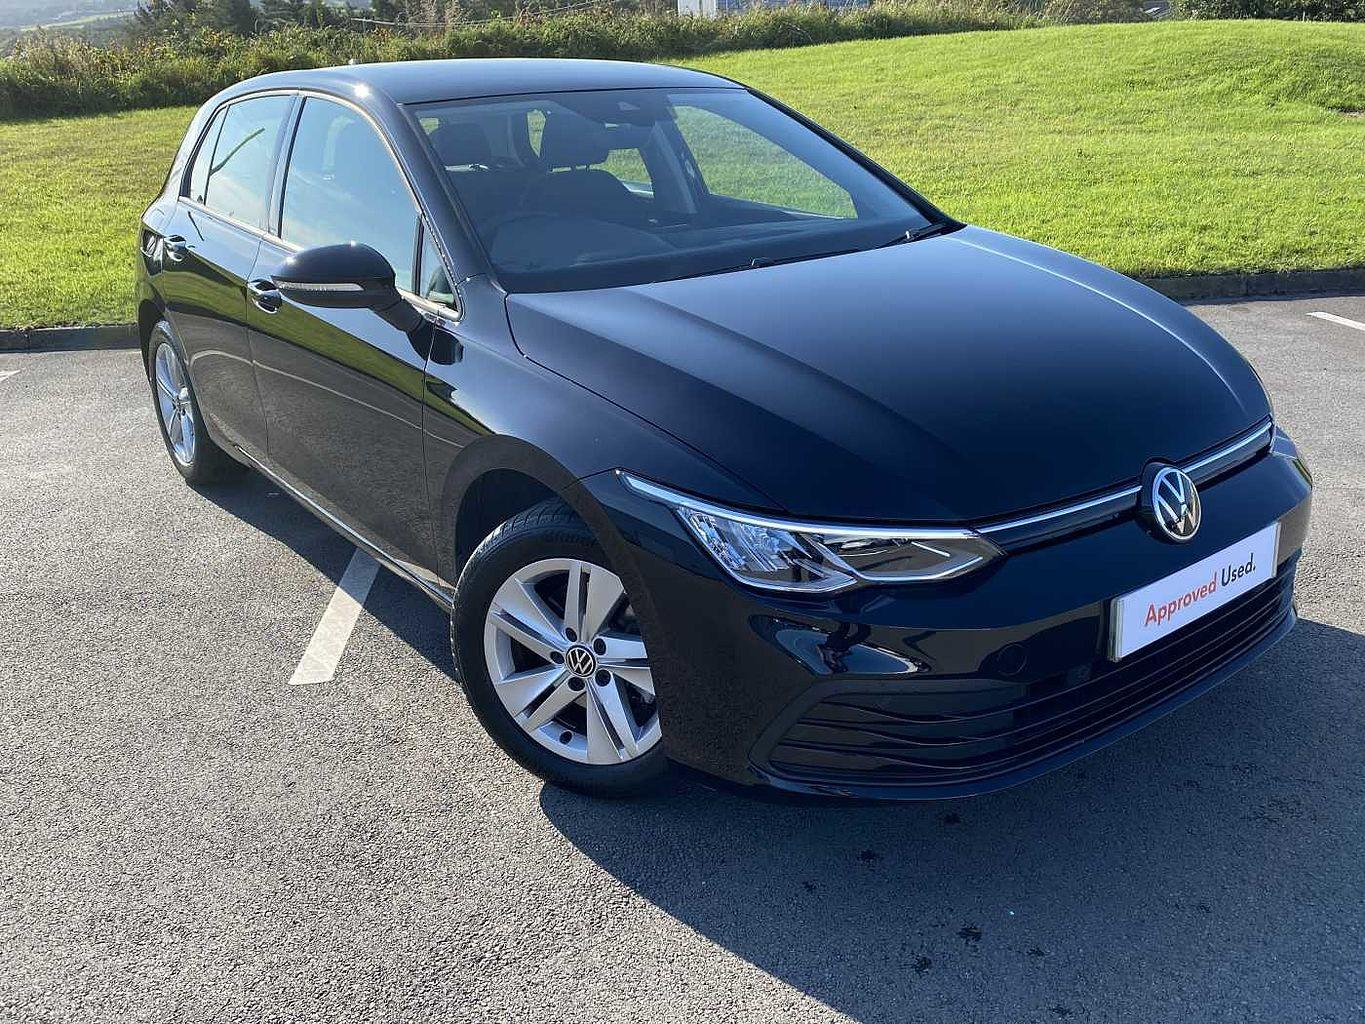 Volkswagen Golf MK8 Hatchback 5-Dr 1.5 TSI (130ps) Life EVO Hatchback Petrol Deep black